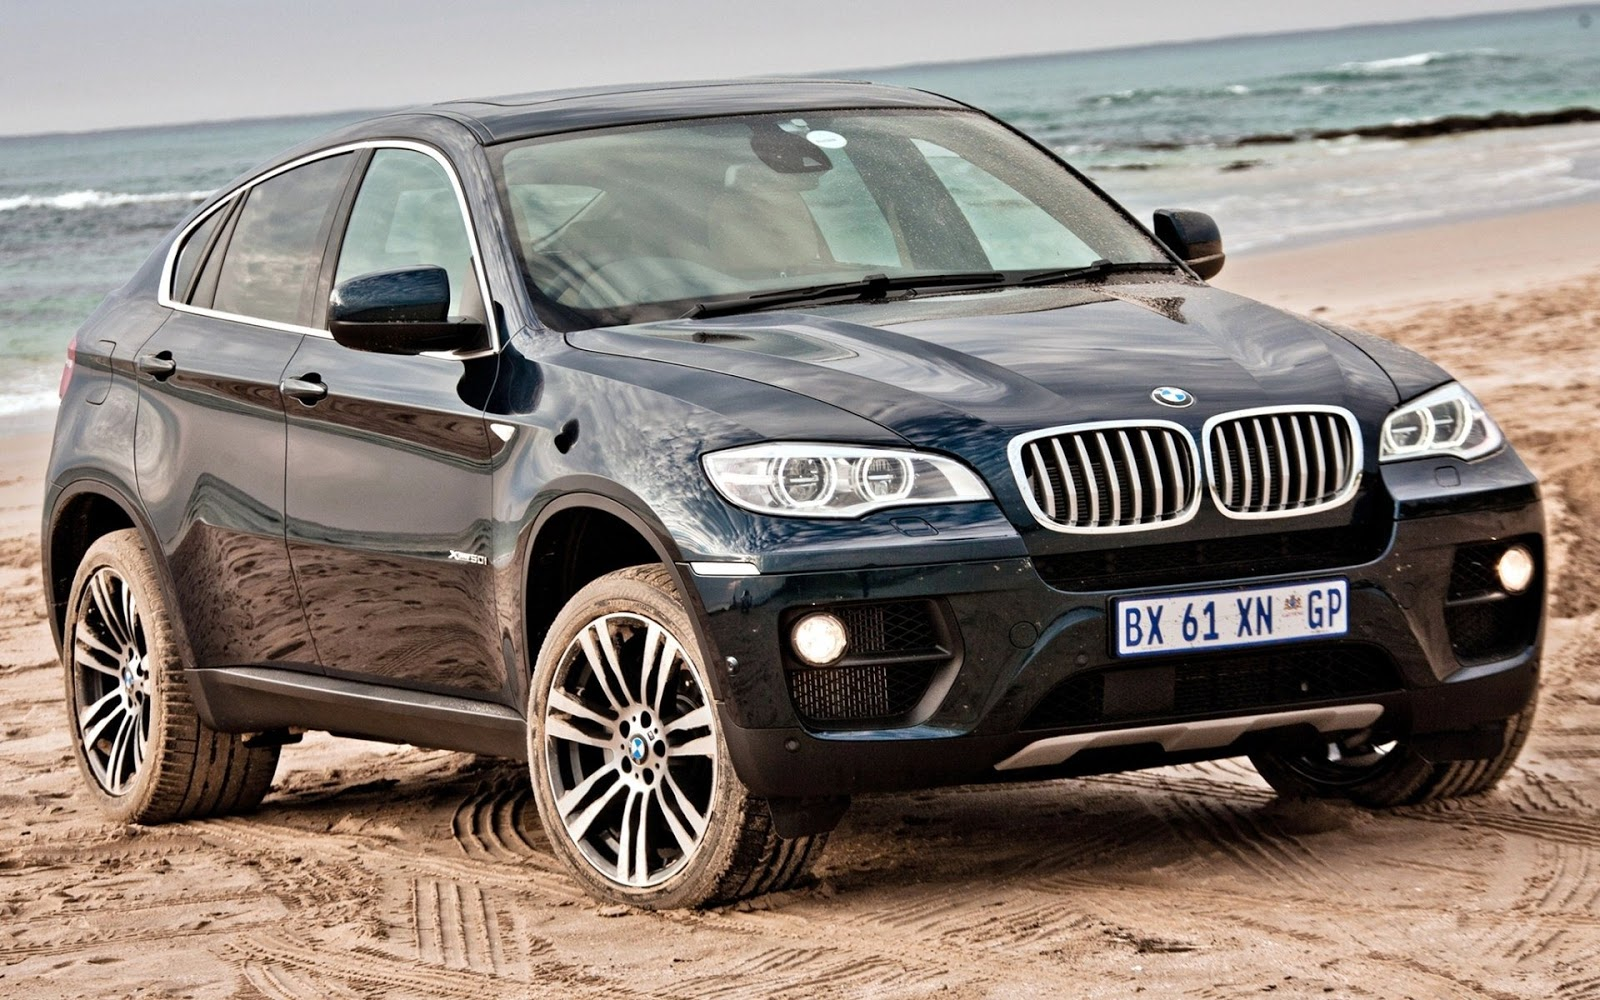 Bmw X6 Off Road 2 Wallpaper